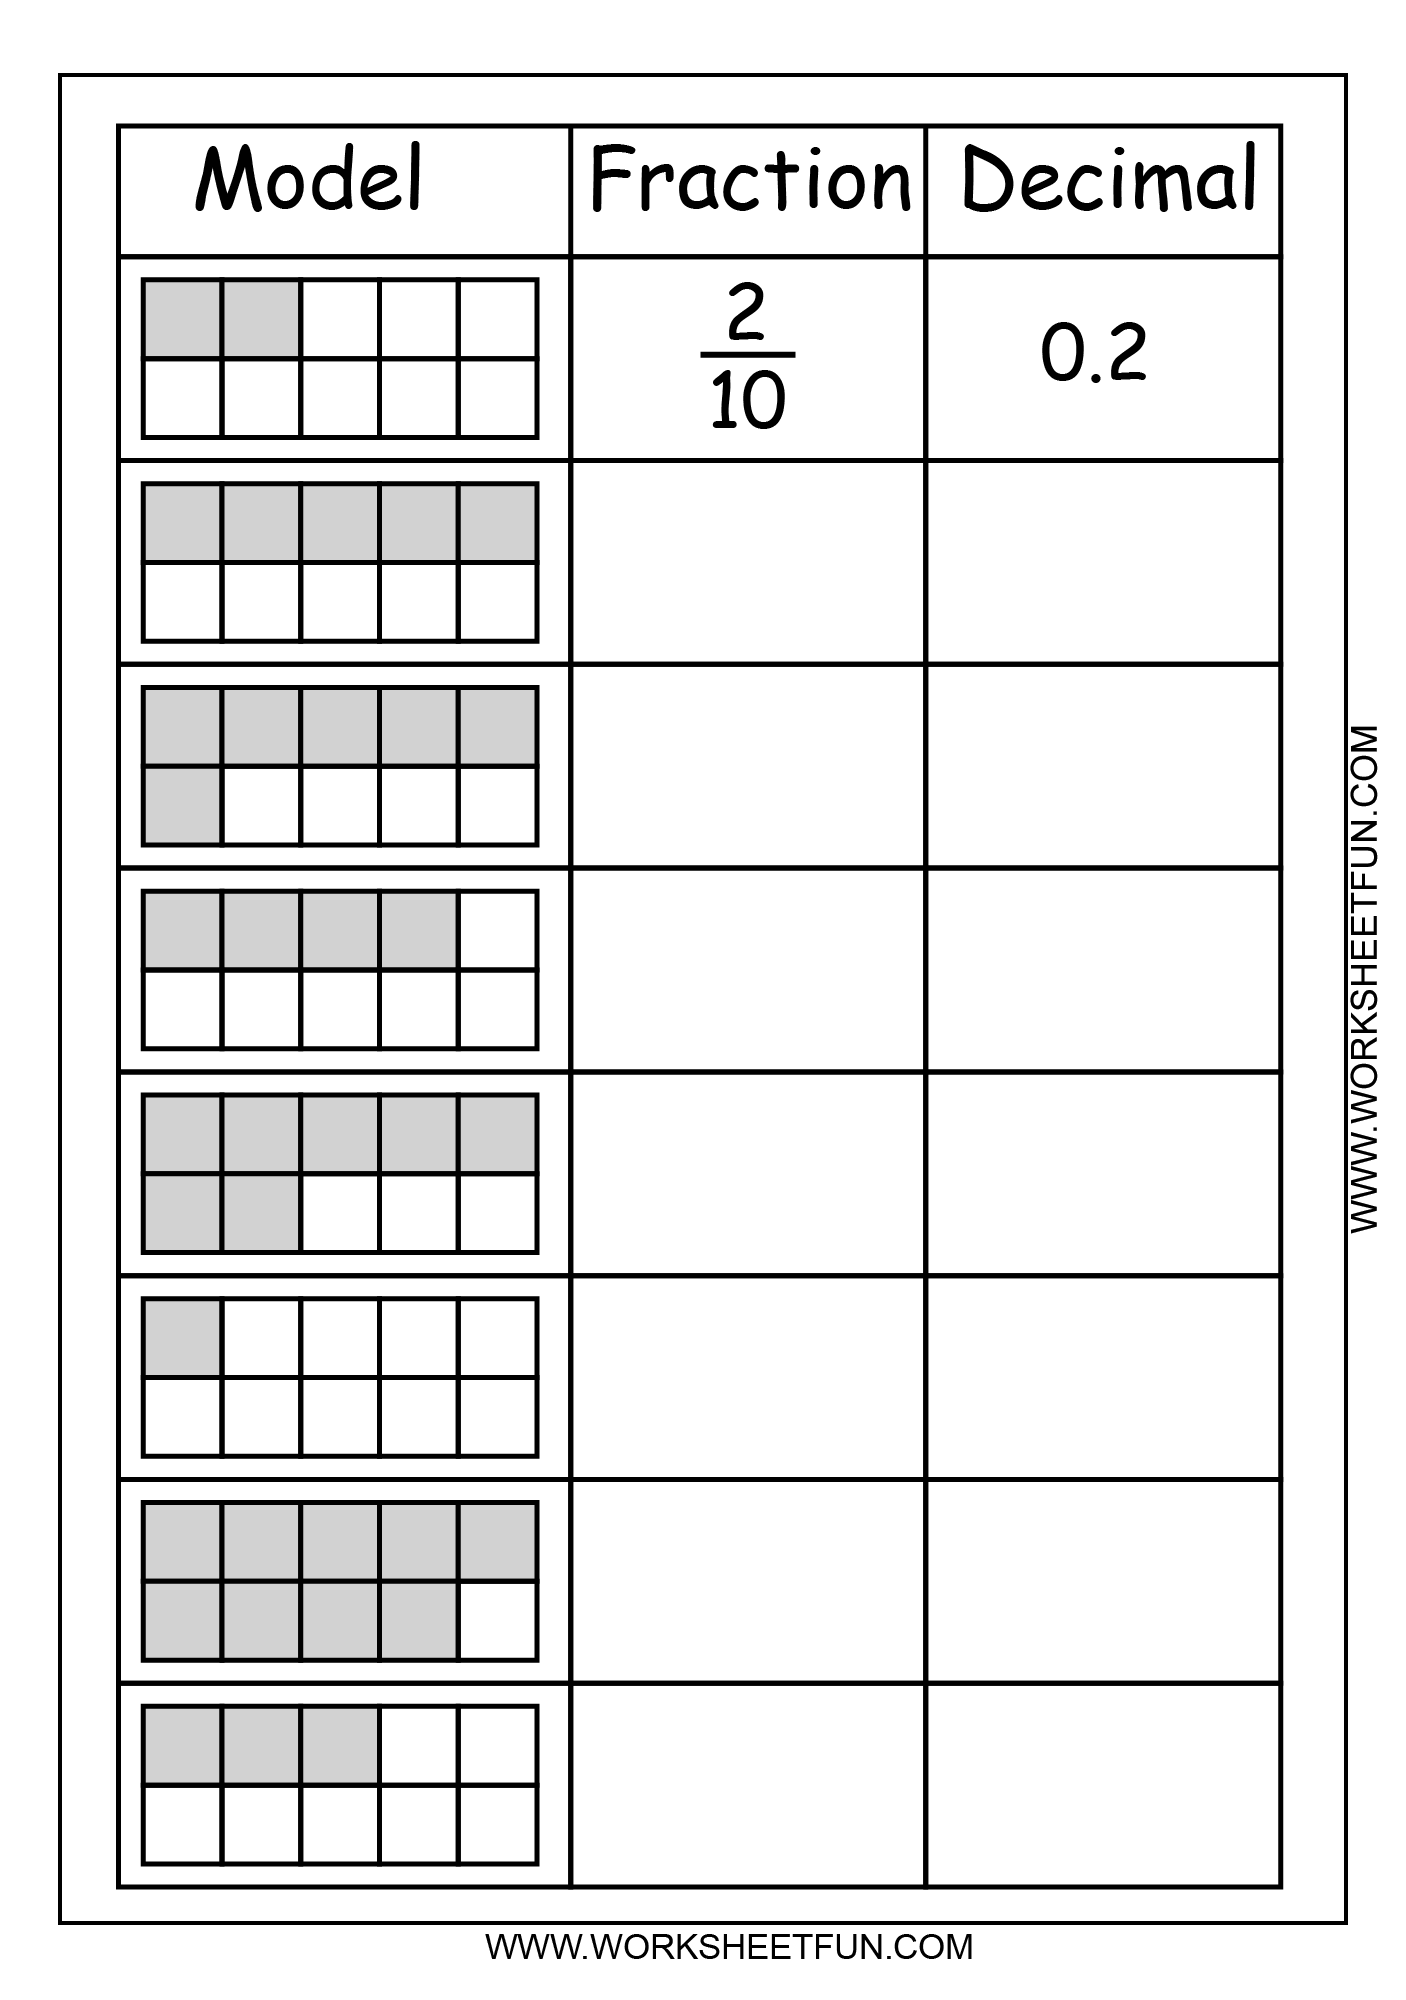 Model fraction decimal Printable Worksheets – Fraction to Decimals Worksheet